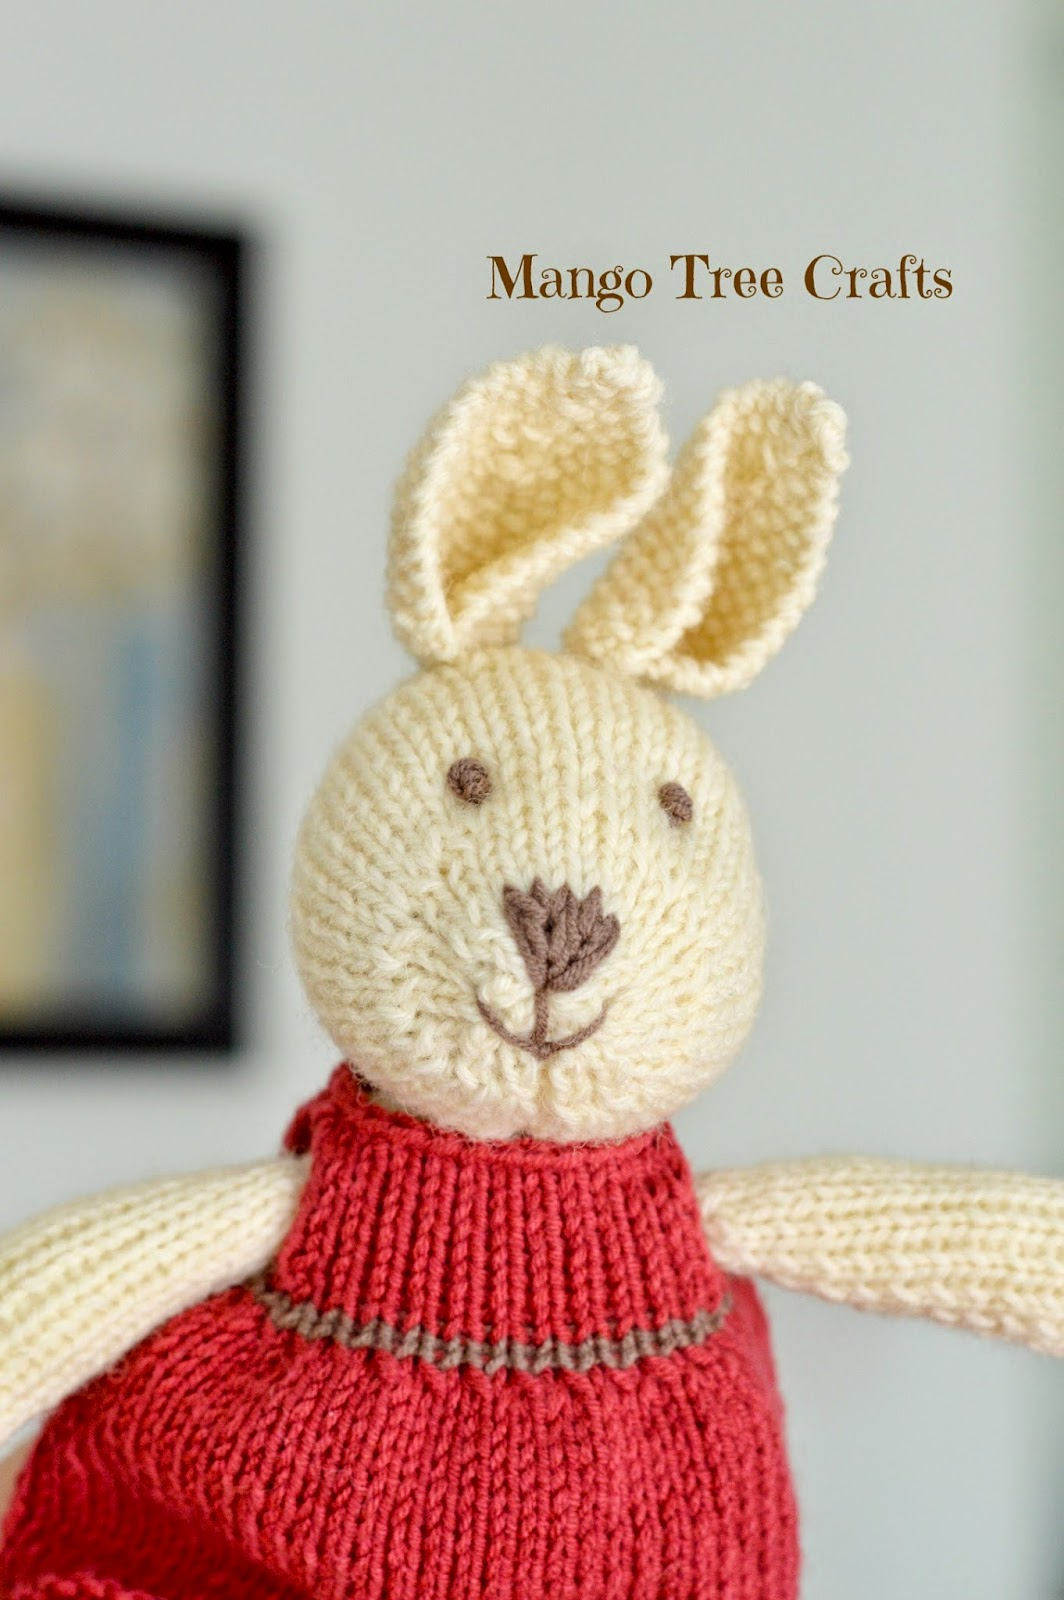 Mango tree crafts knitted bunny girl knitted bunny pattern bankloansurffo Choice Image